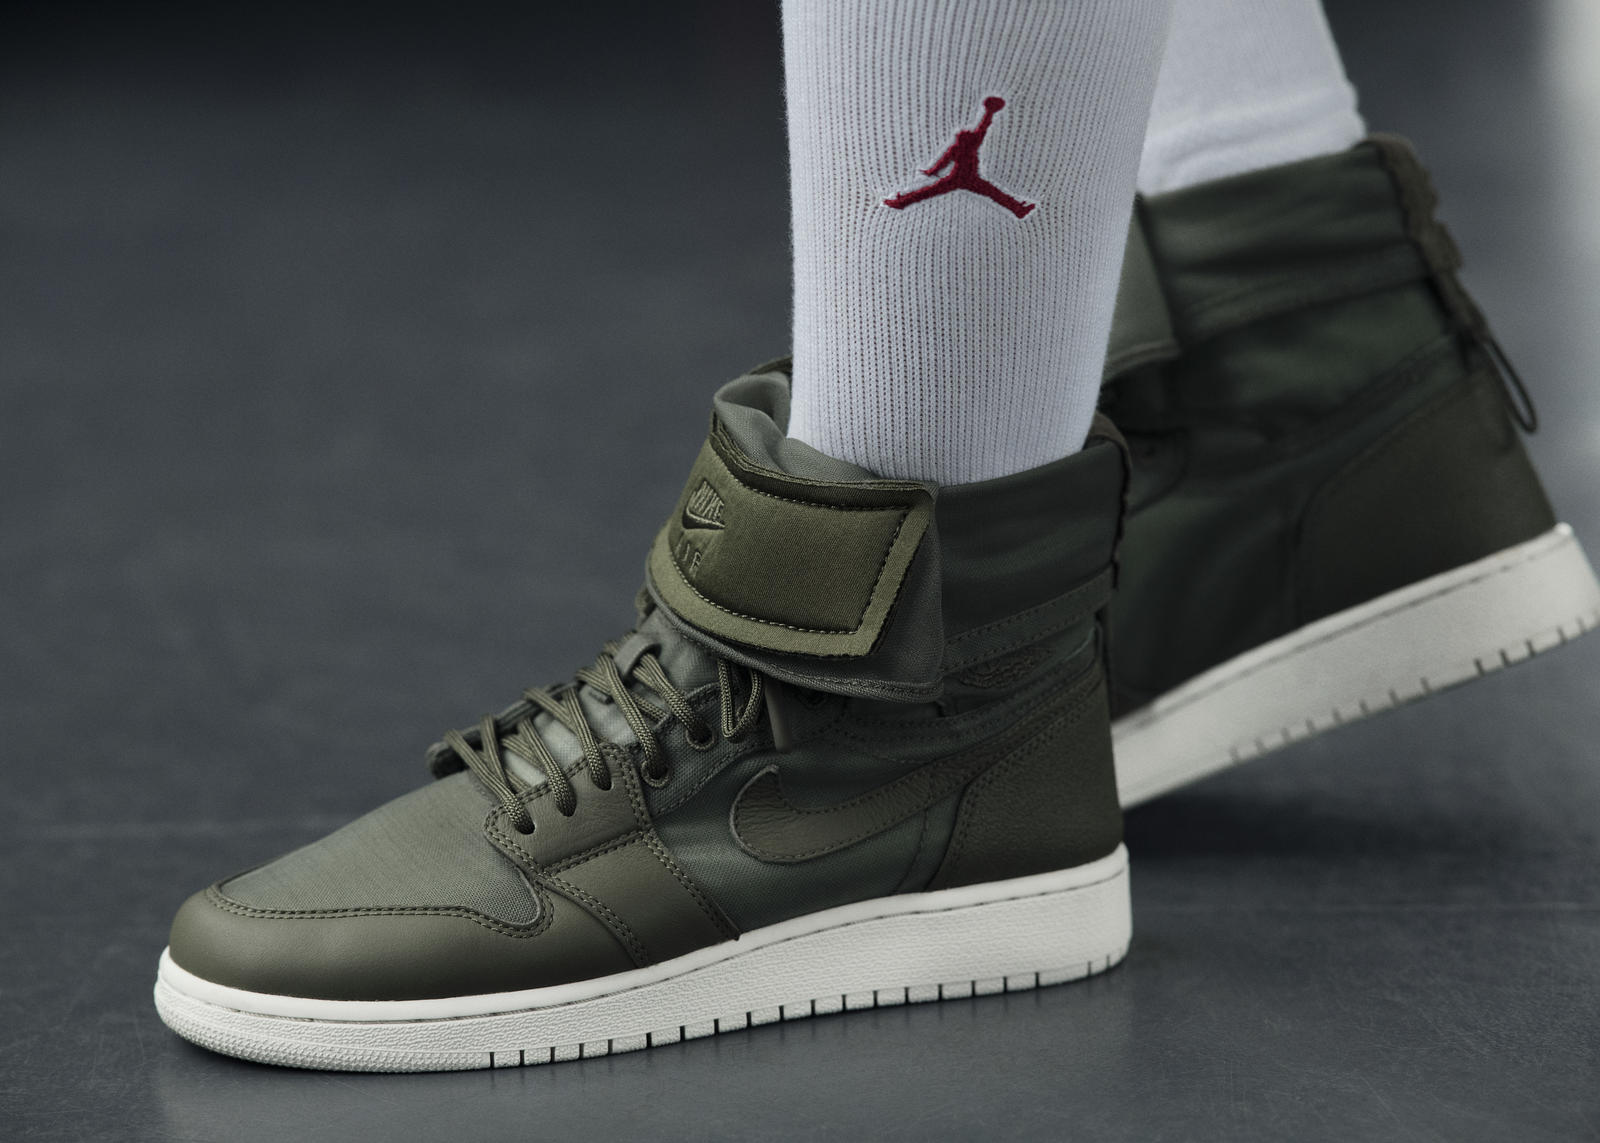 buy popular e08b5 58463 AIR JORDAN I HIGH OG  This collection adds a new twist to the AJI High OG by  adding Nike Air messaging to Guava Ice, Olive Canvas and Vintage Coral ...